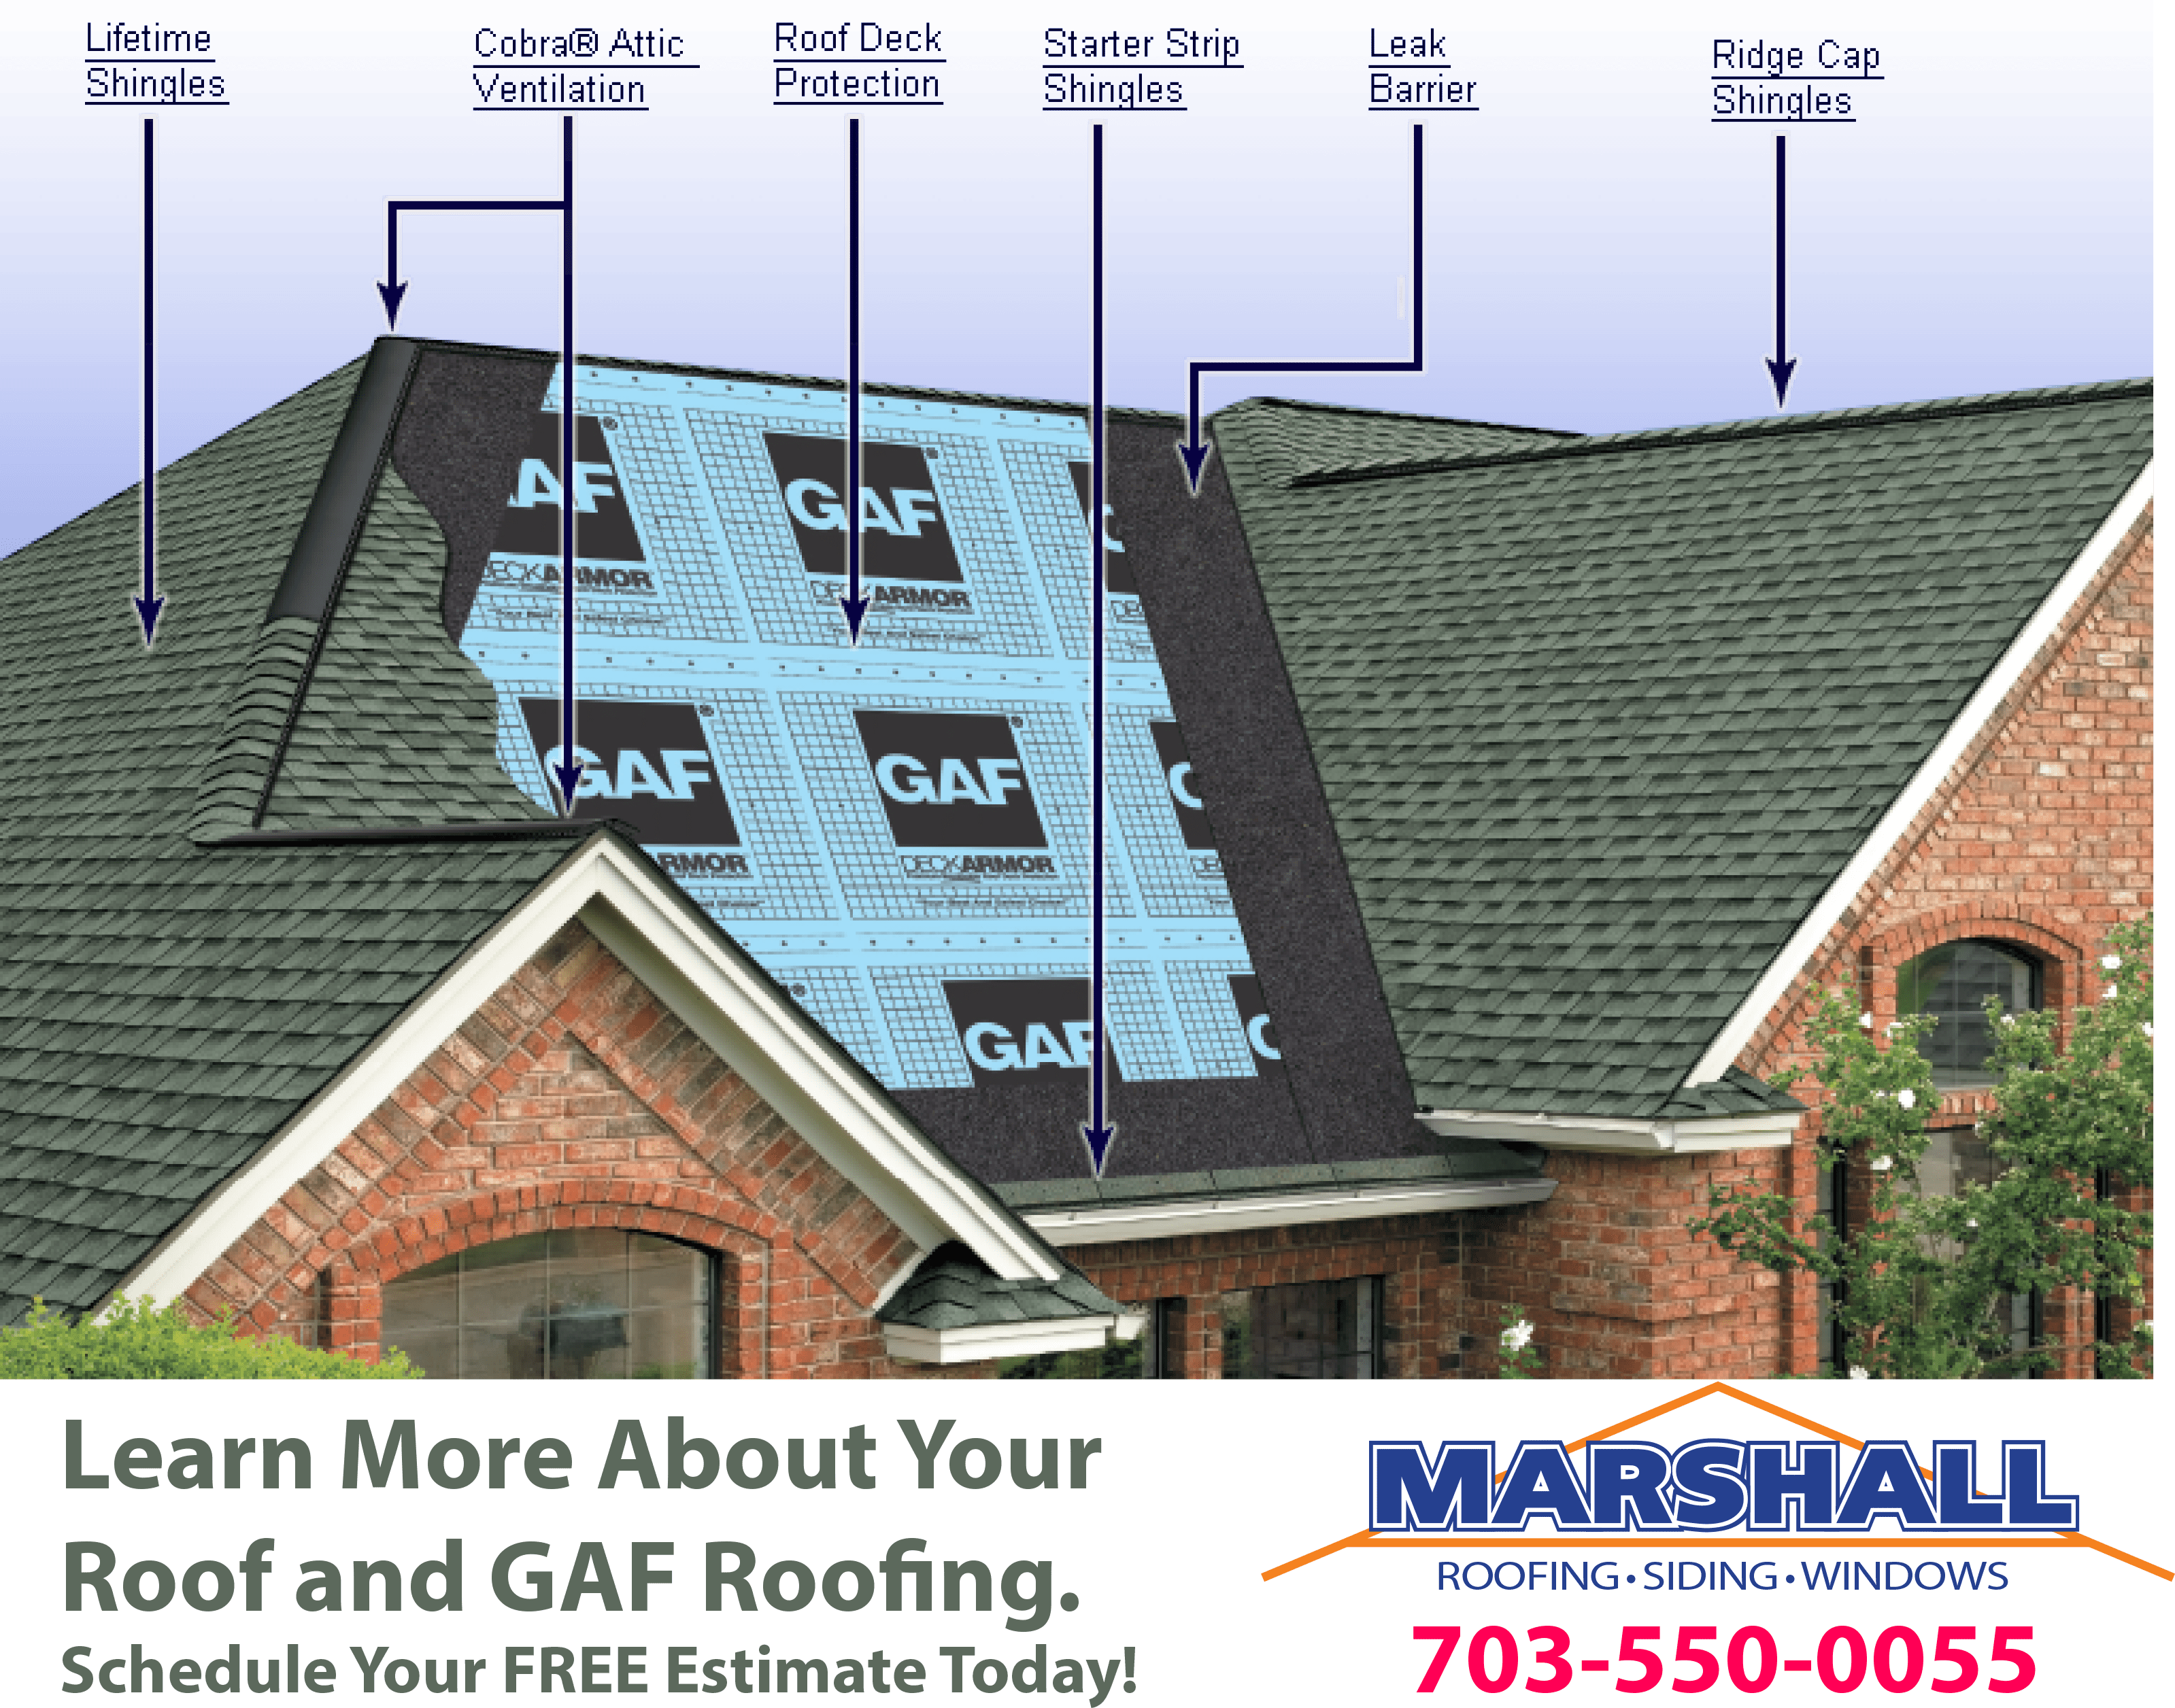 Gaf Roofing Northern Virginia Top Rated Roofing Siding Window Contractor